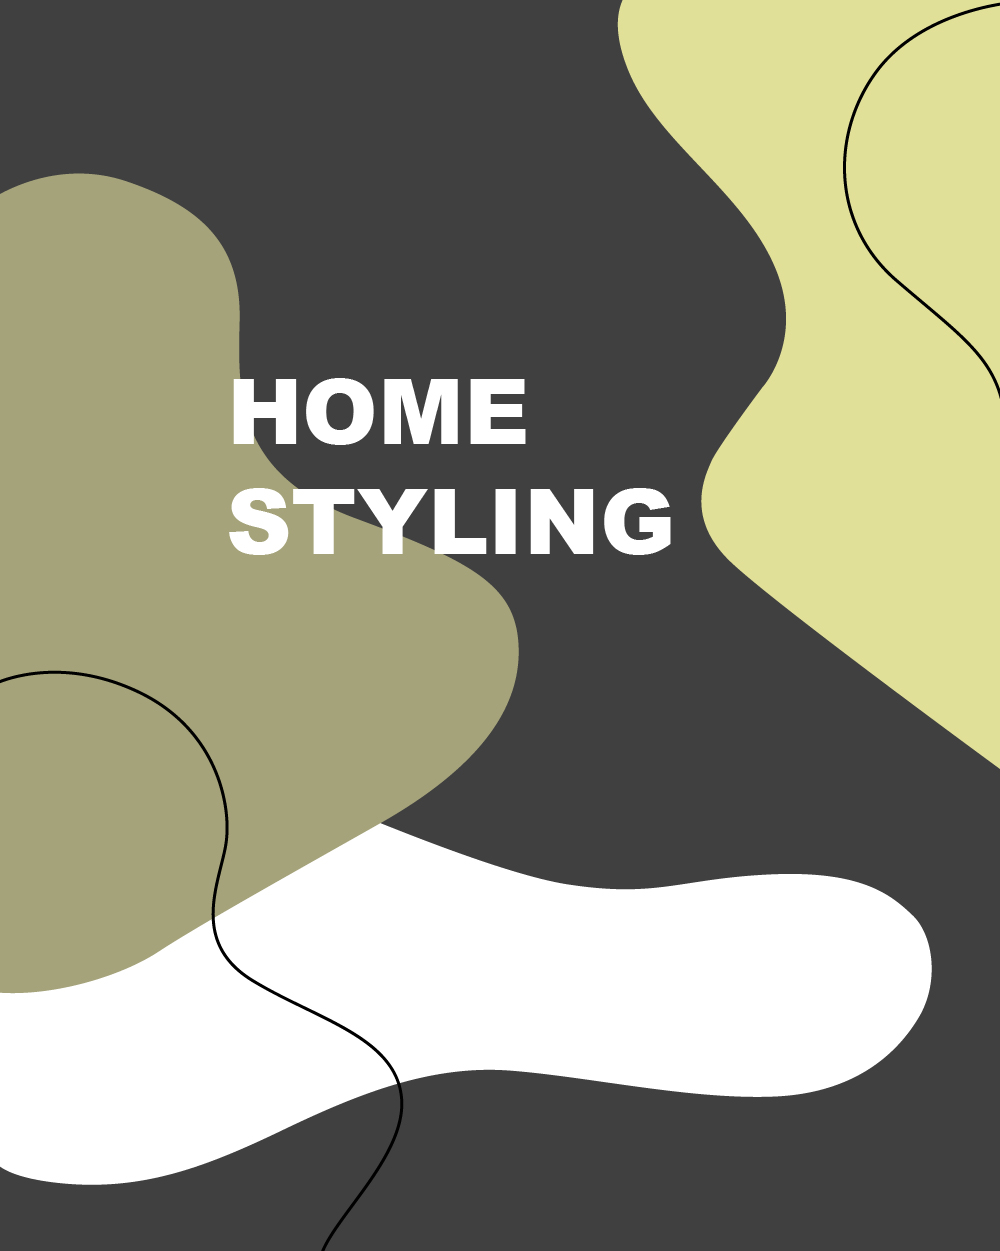 home styling-hov-100